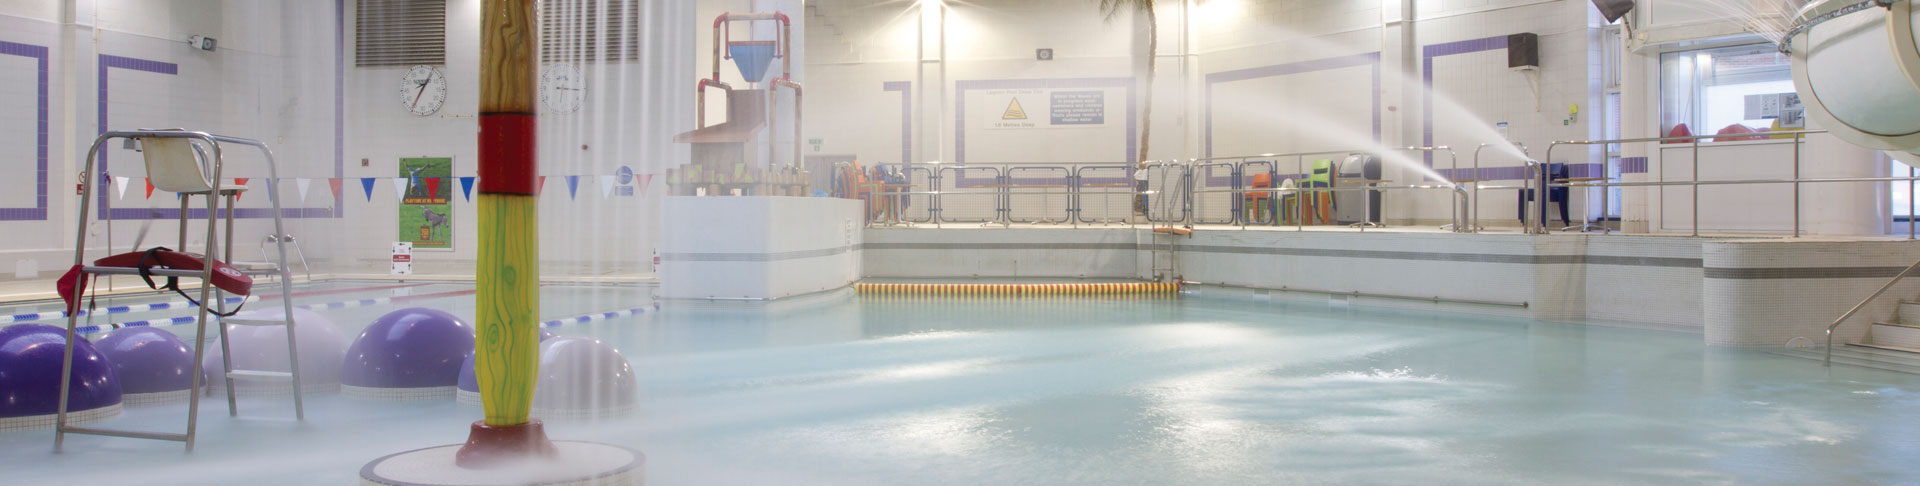 Swimming at tandridge leisure centre - Oxted swimming pool opening hours ...